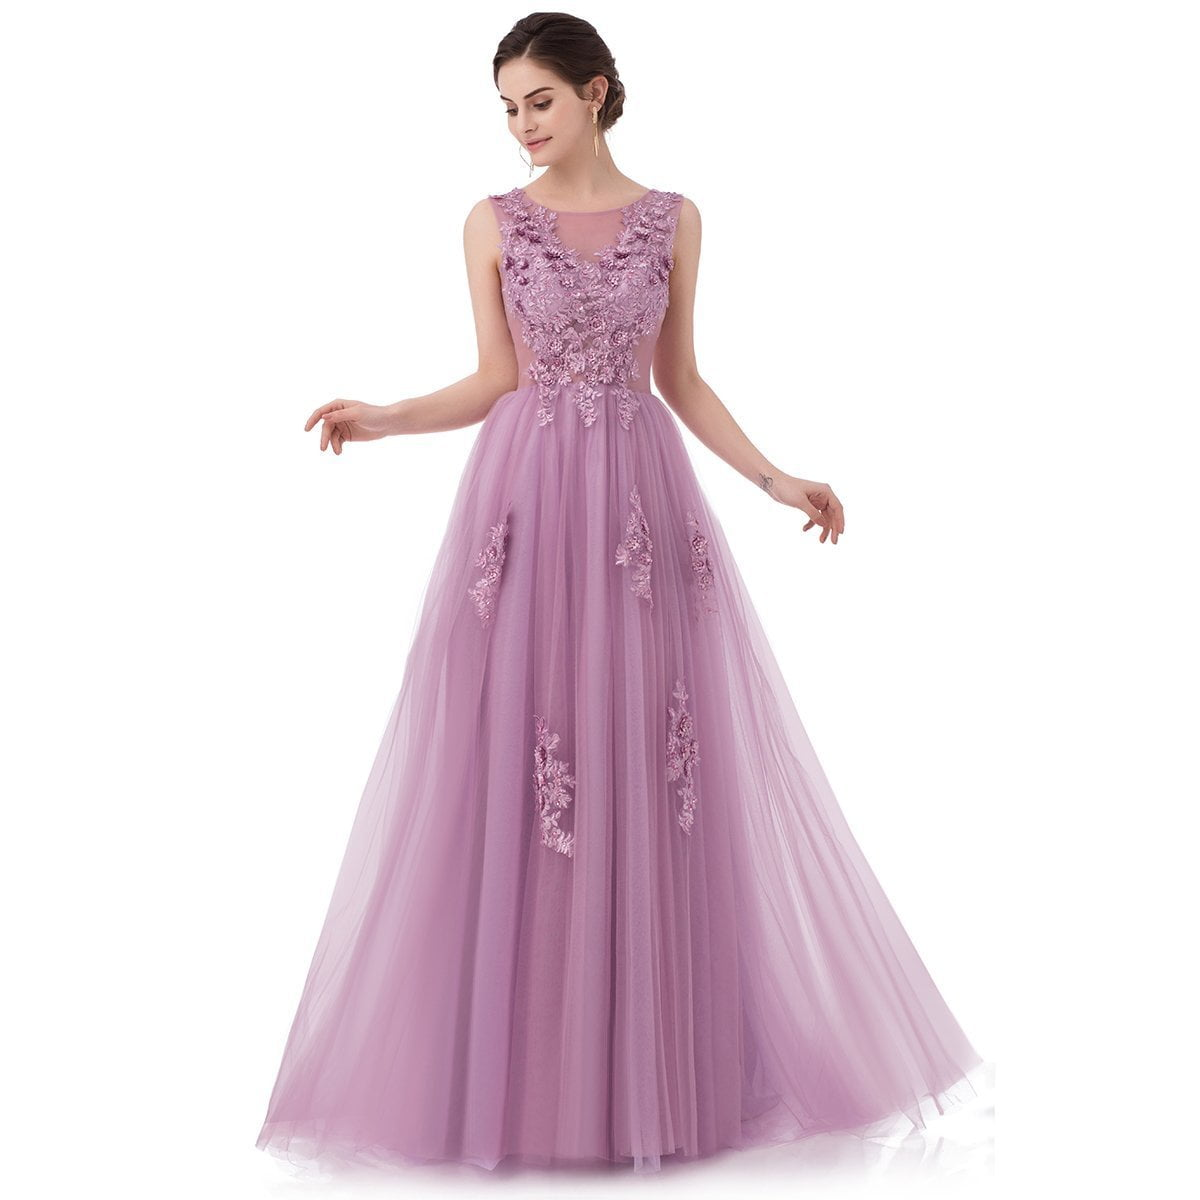 New Sweet Lace Evening Dress Purple Pink Appliques With Beading Sleeveless Floor-length Long Prom Party Gowns-Dress-SheSimplyShops